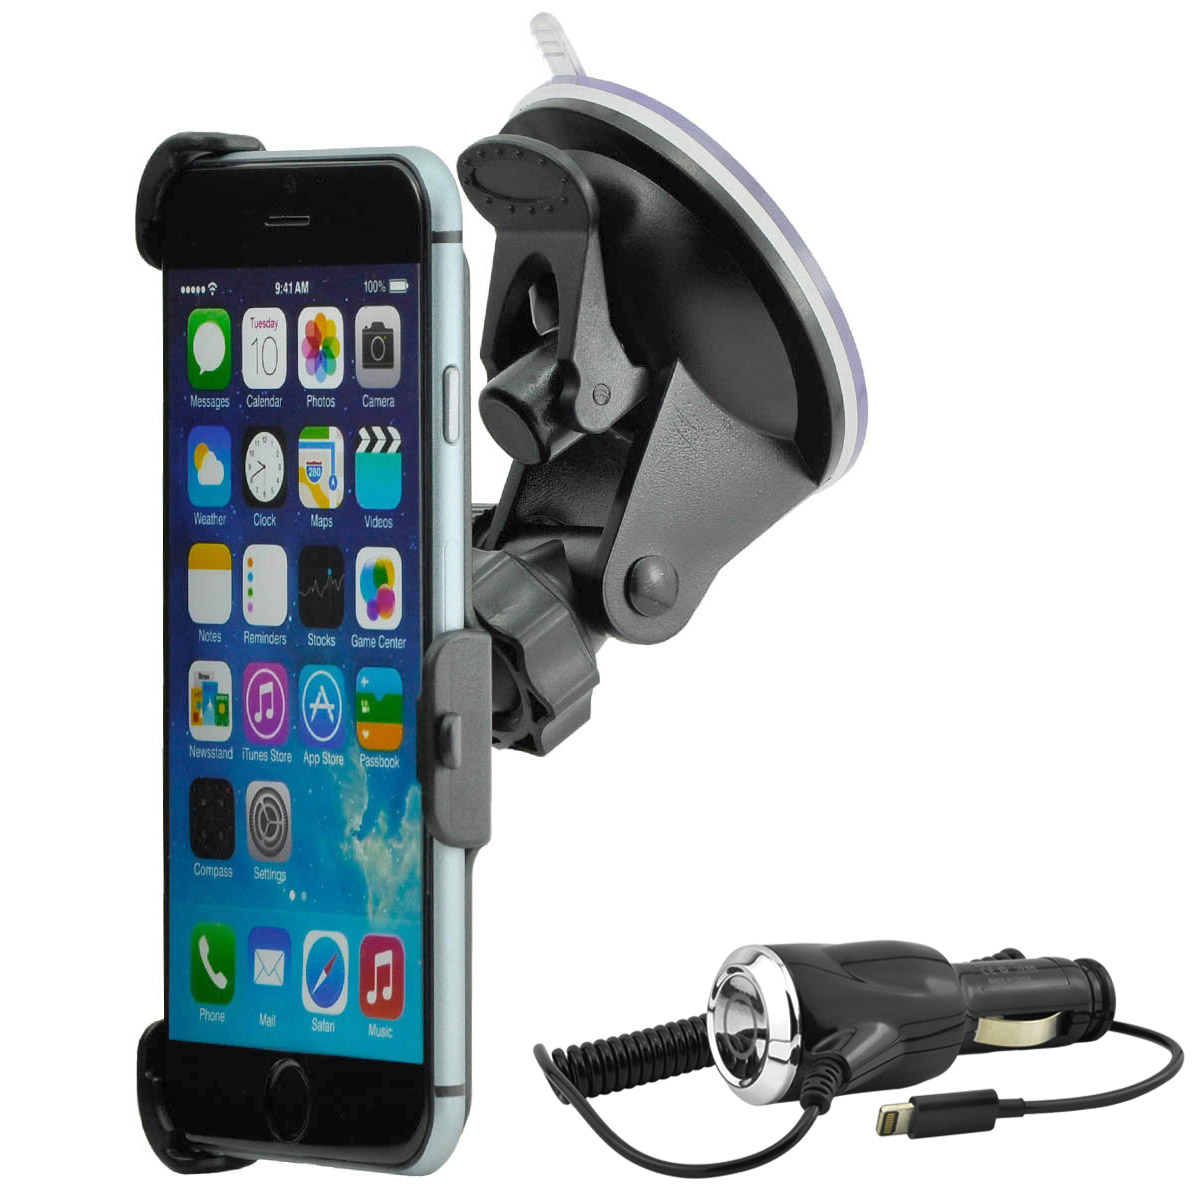 auto kfz handy halterung halter car holder mount f apple iphone 6s plus 6 plus ebay. Black Bedroom Furniture Sets. Home Design Ideas